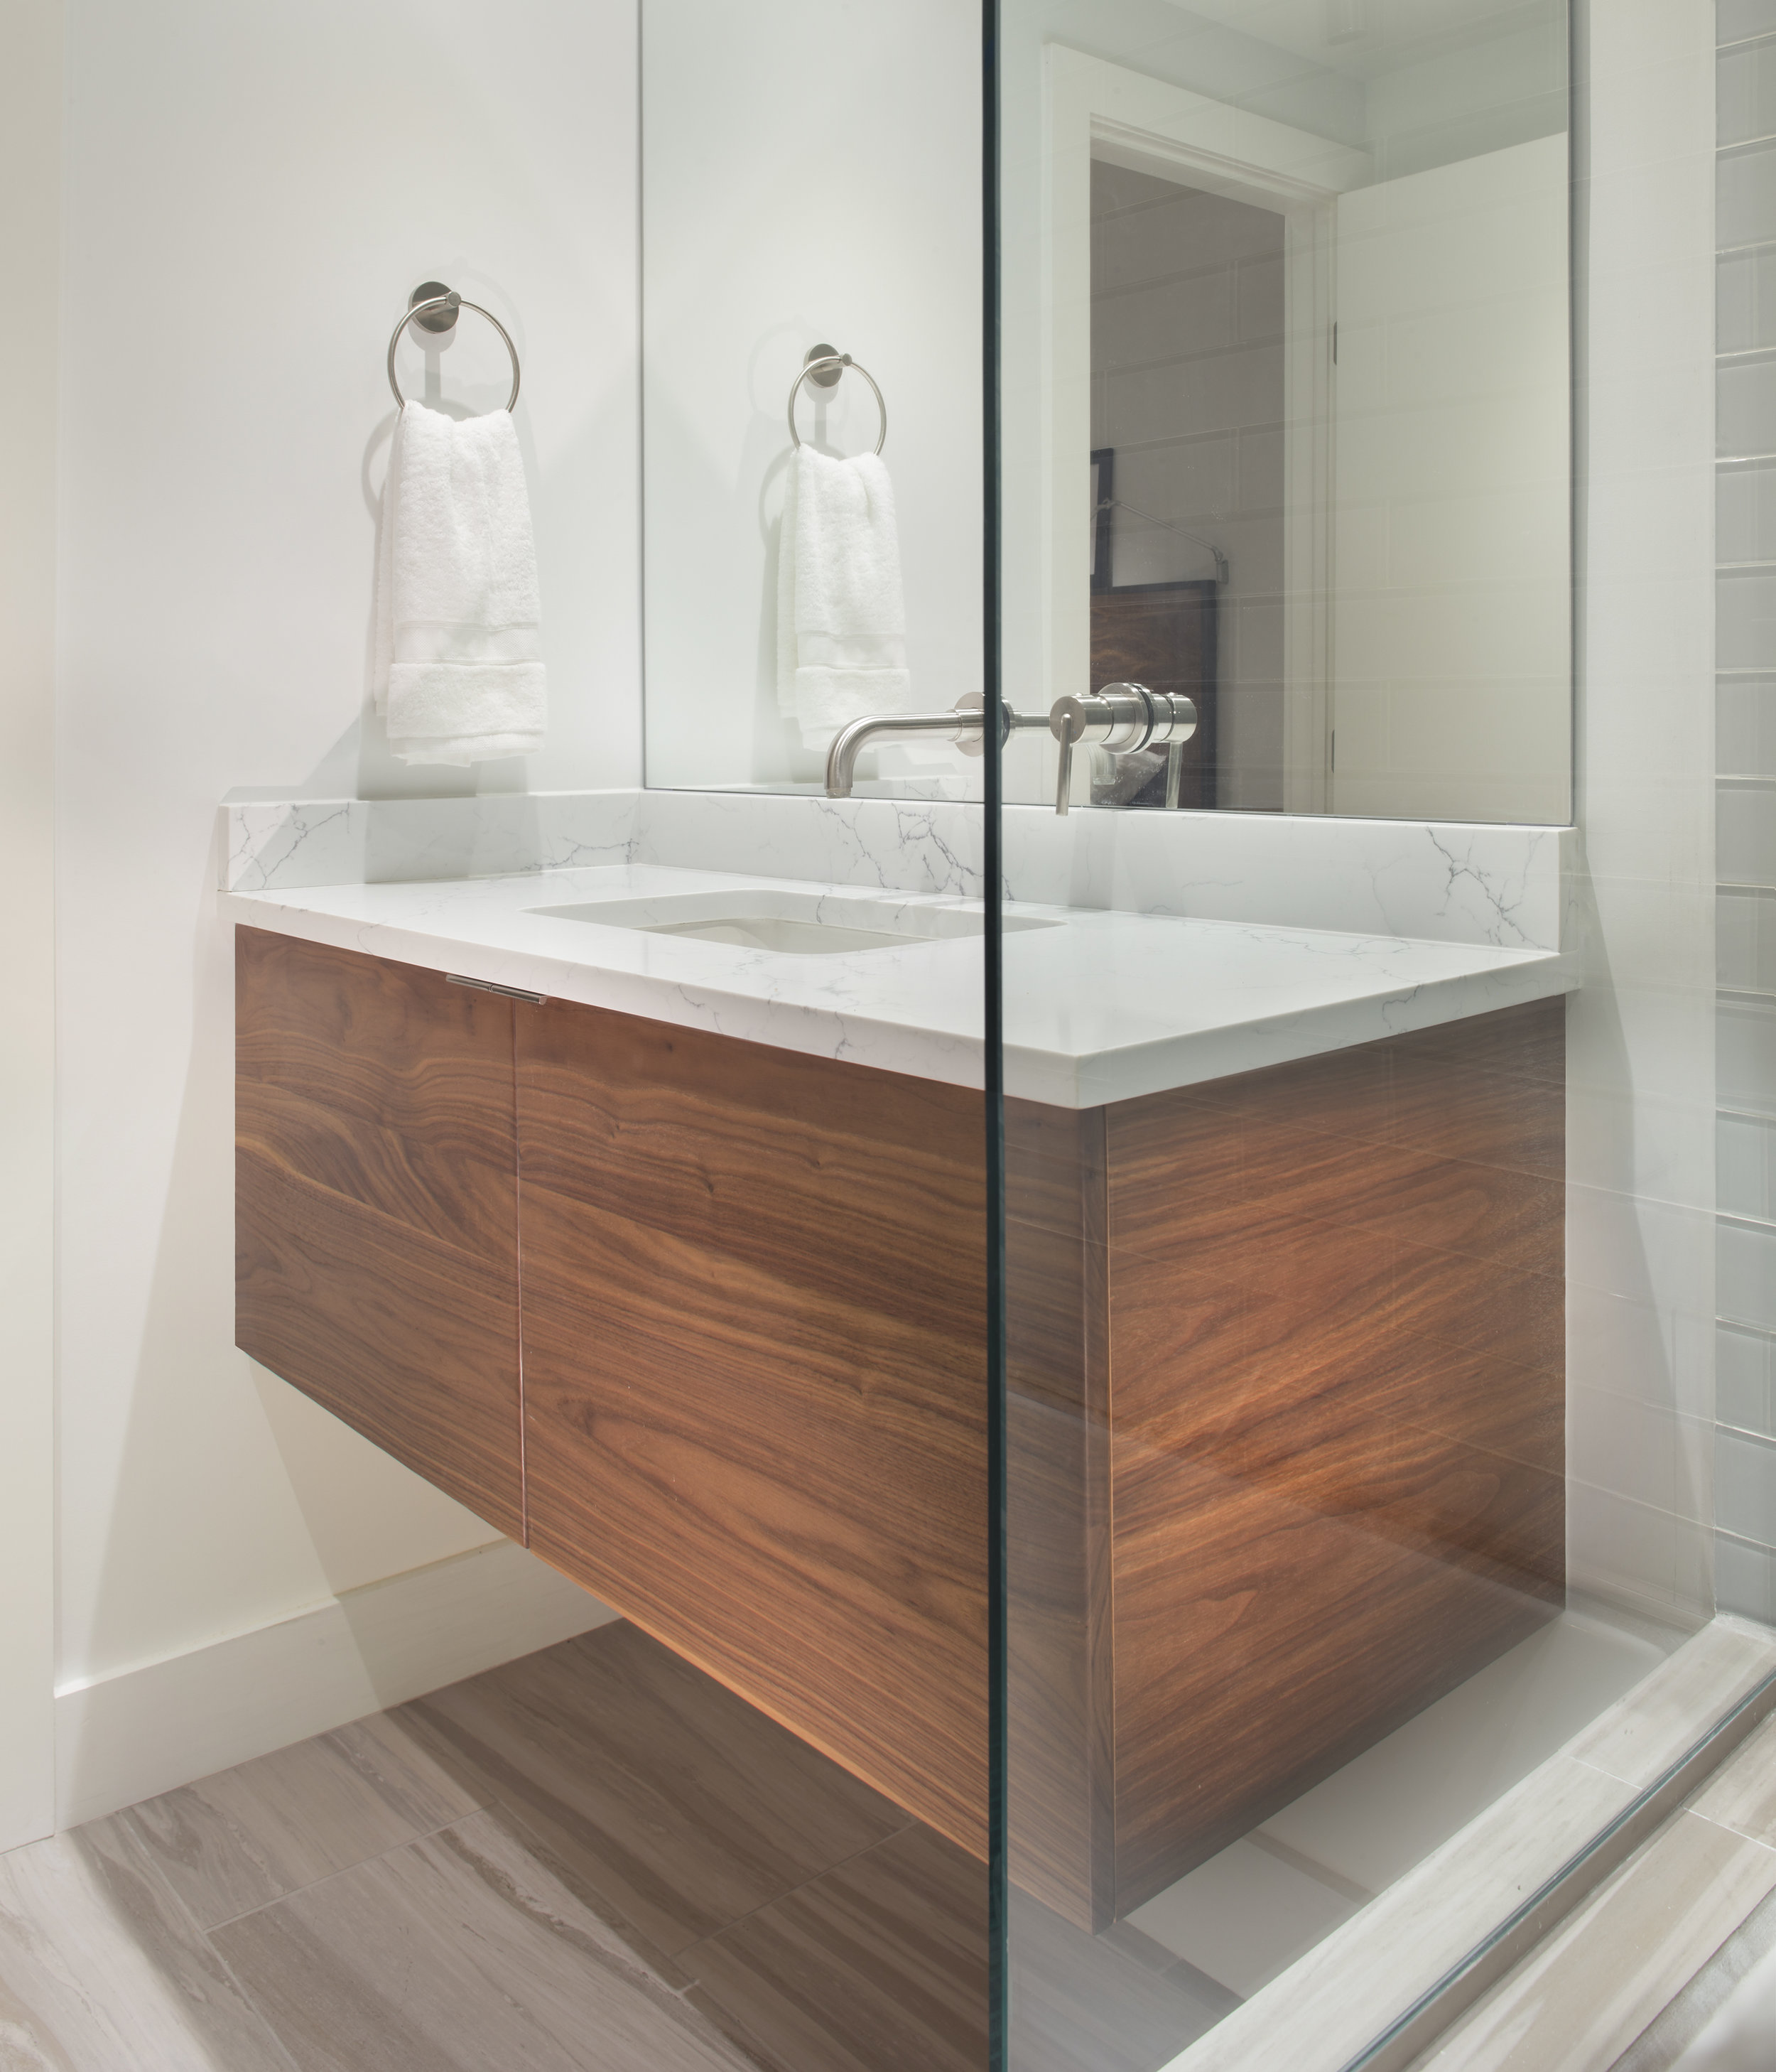 Custom Walnut Vanity - A walnut floating vanity with concealed drawers and a simple, clean aesthetic. Solid walnut face and soft-close hinges